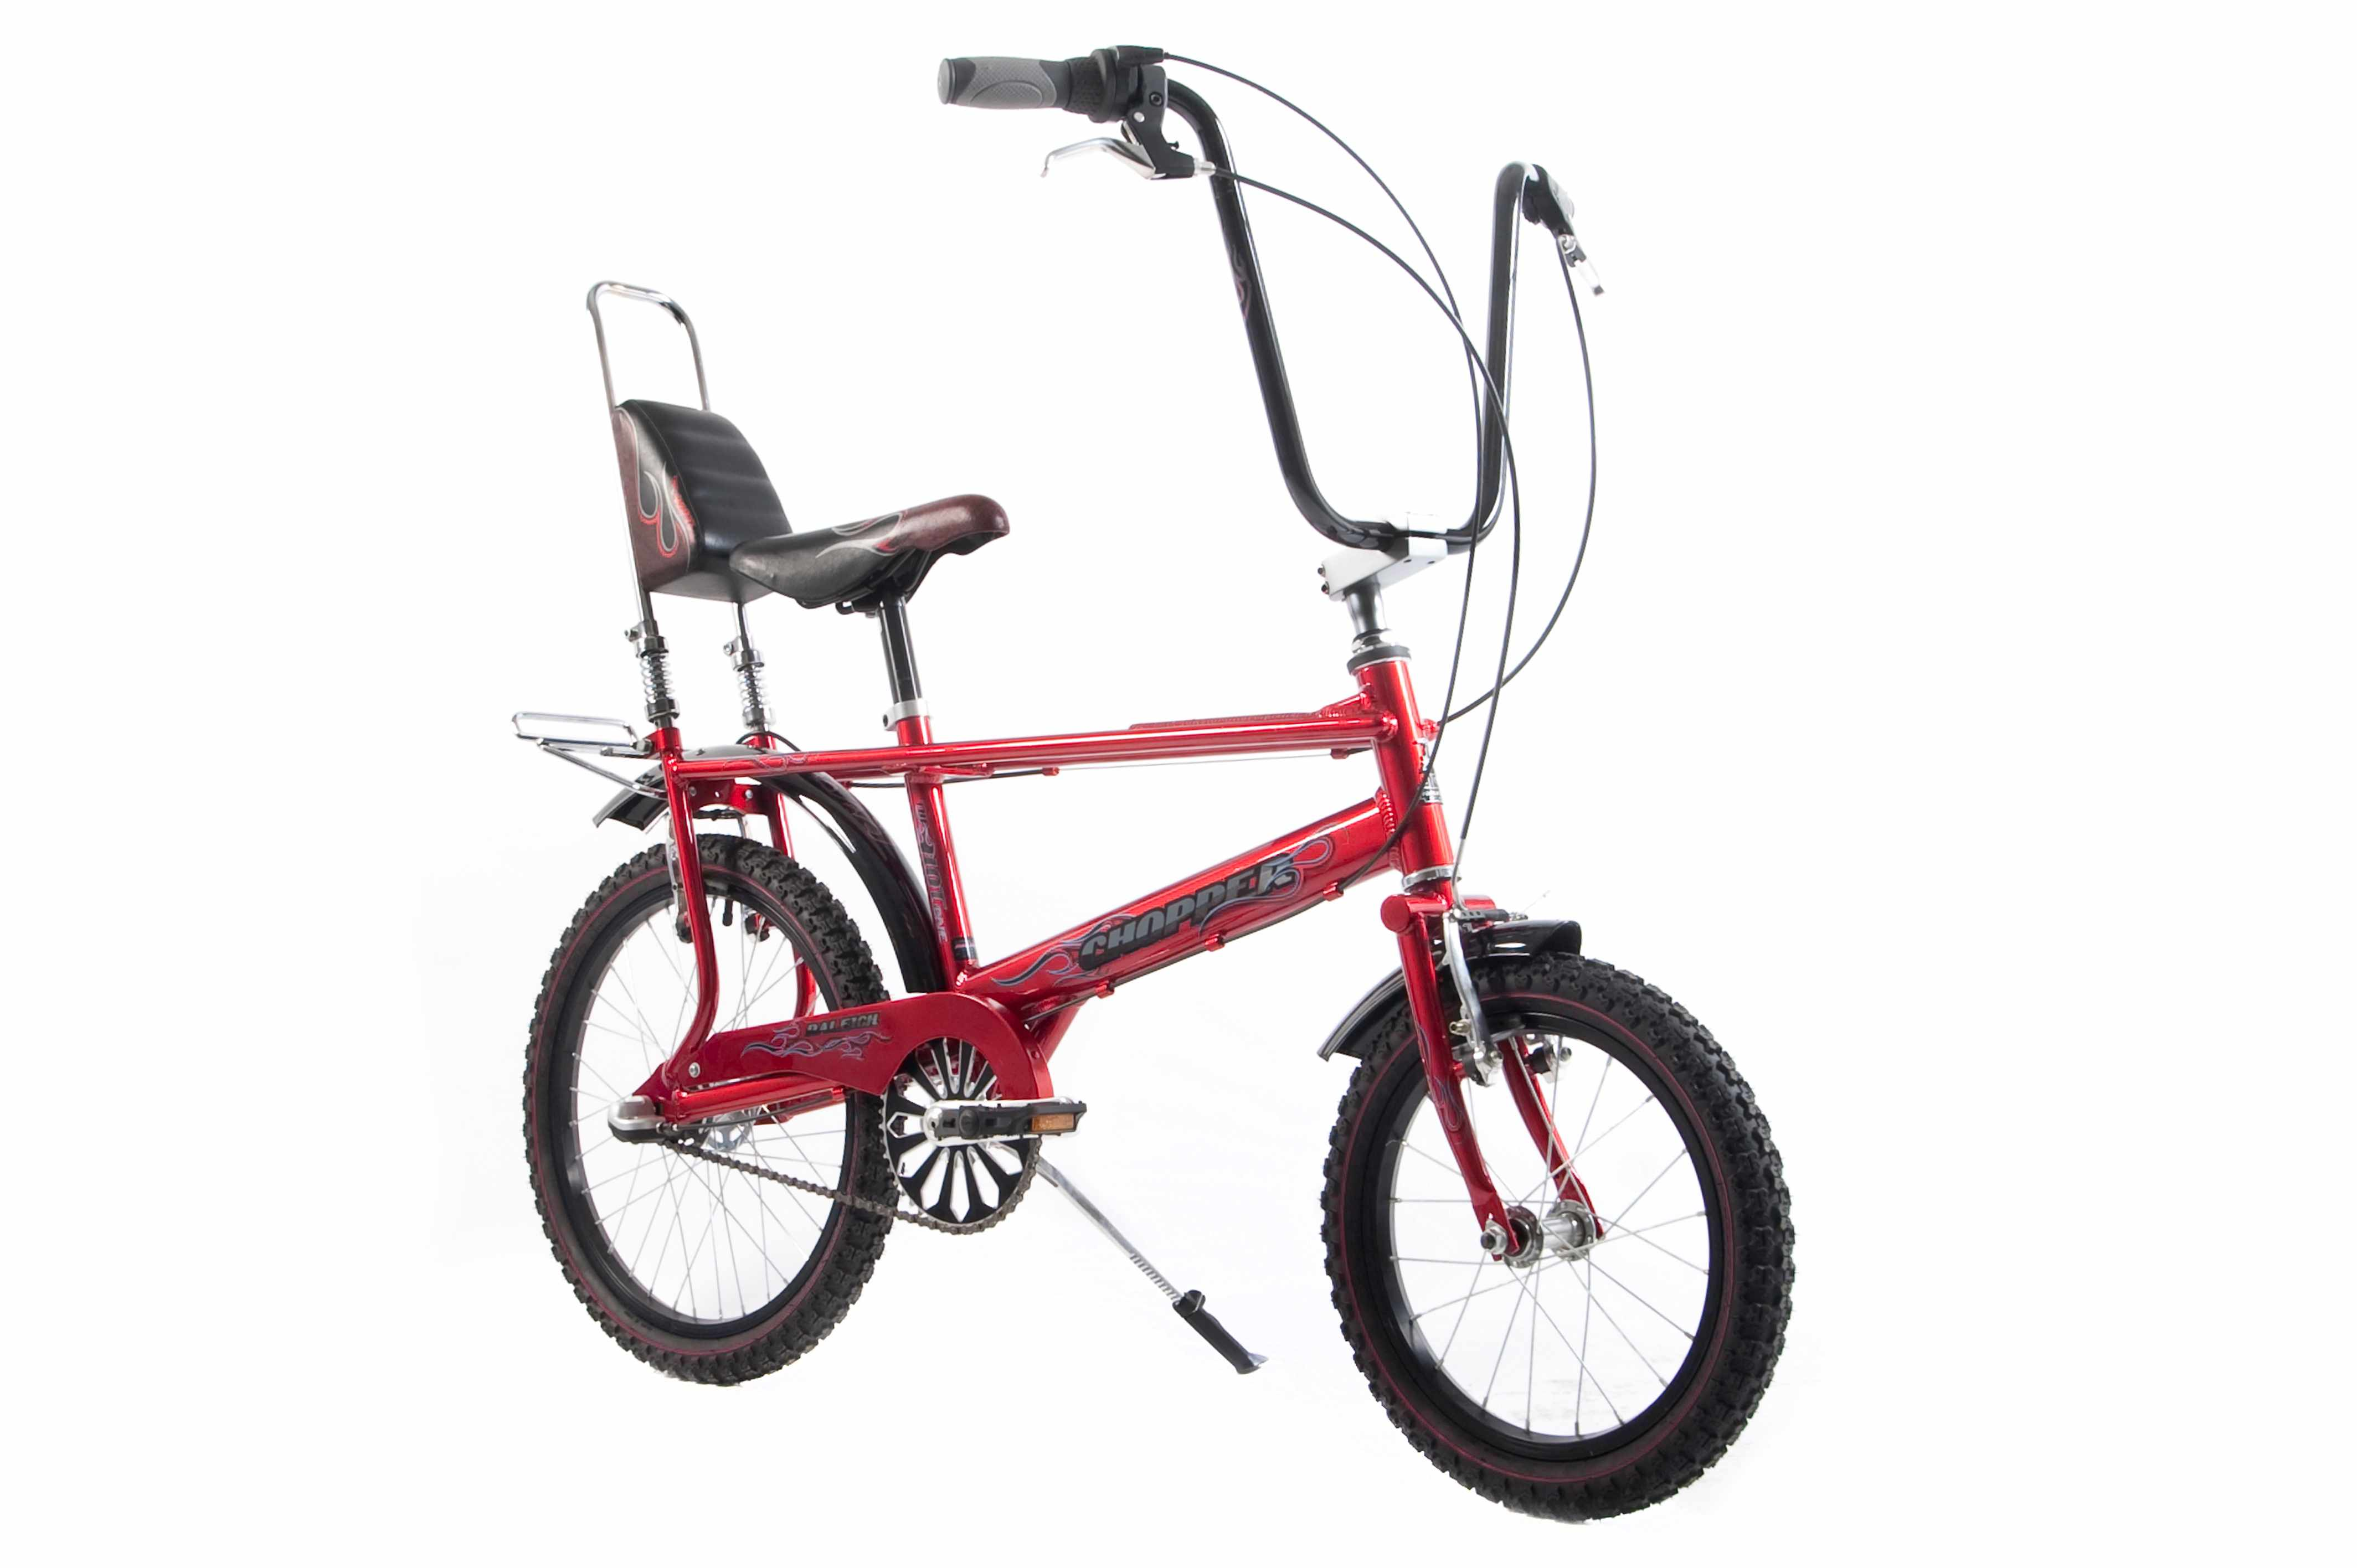 Win this limited edition Chopper bike!